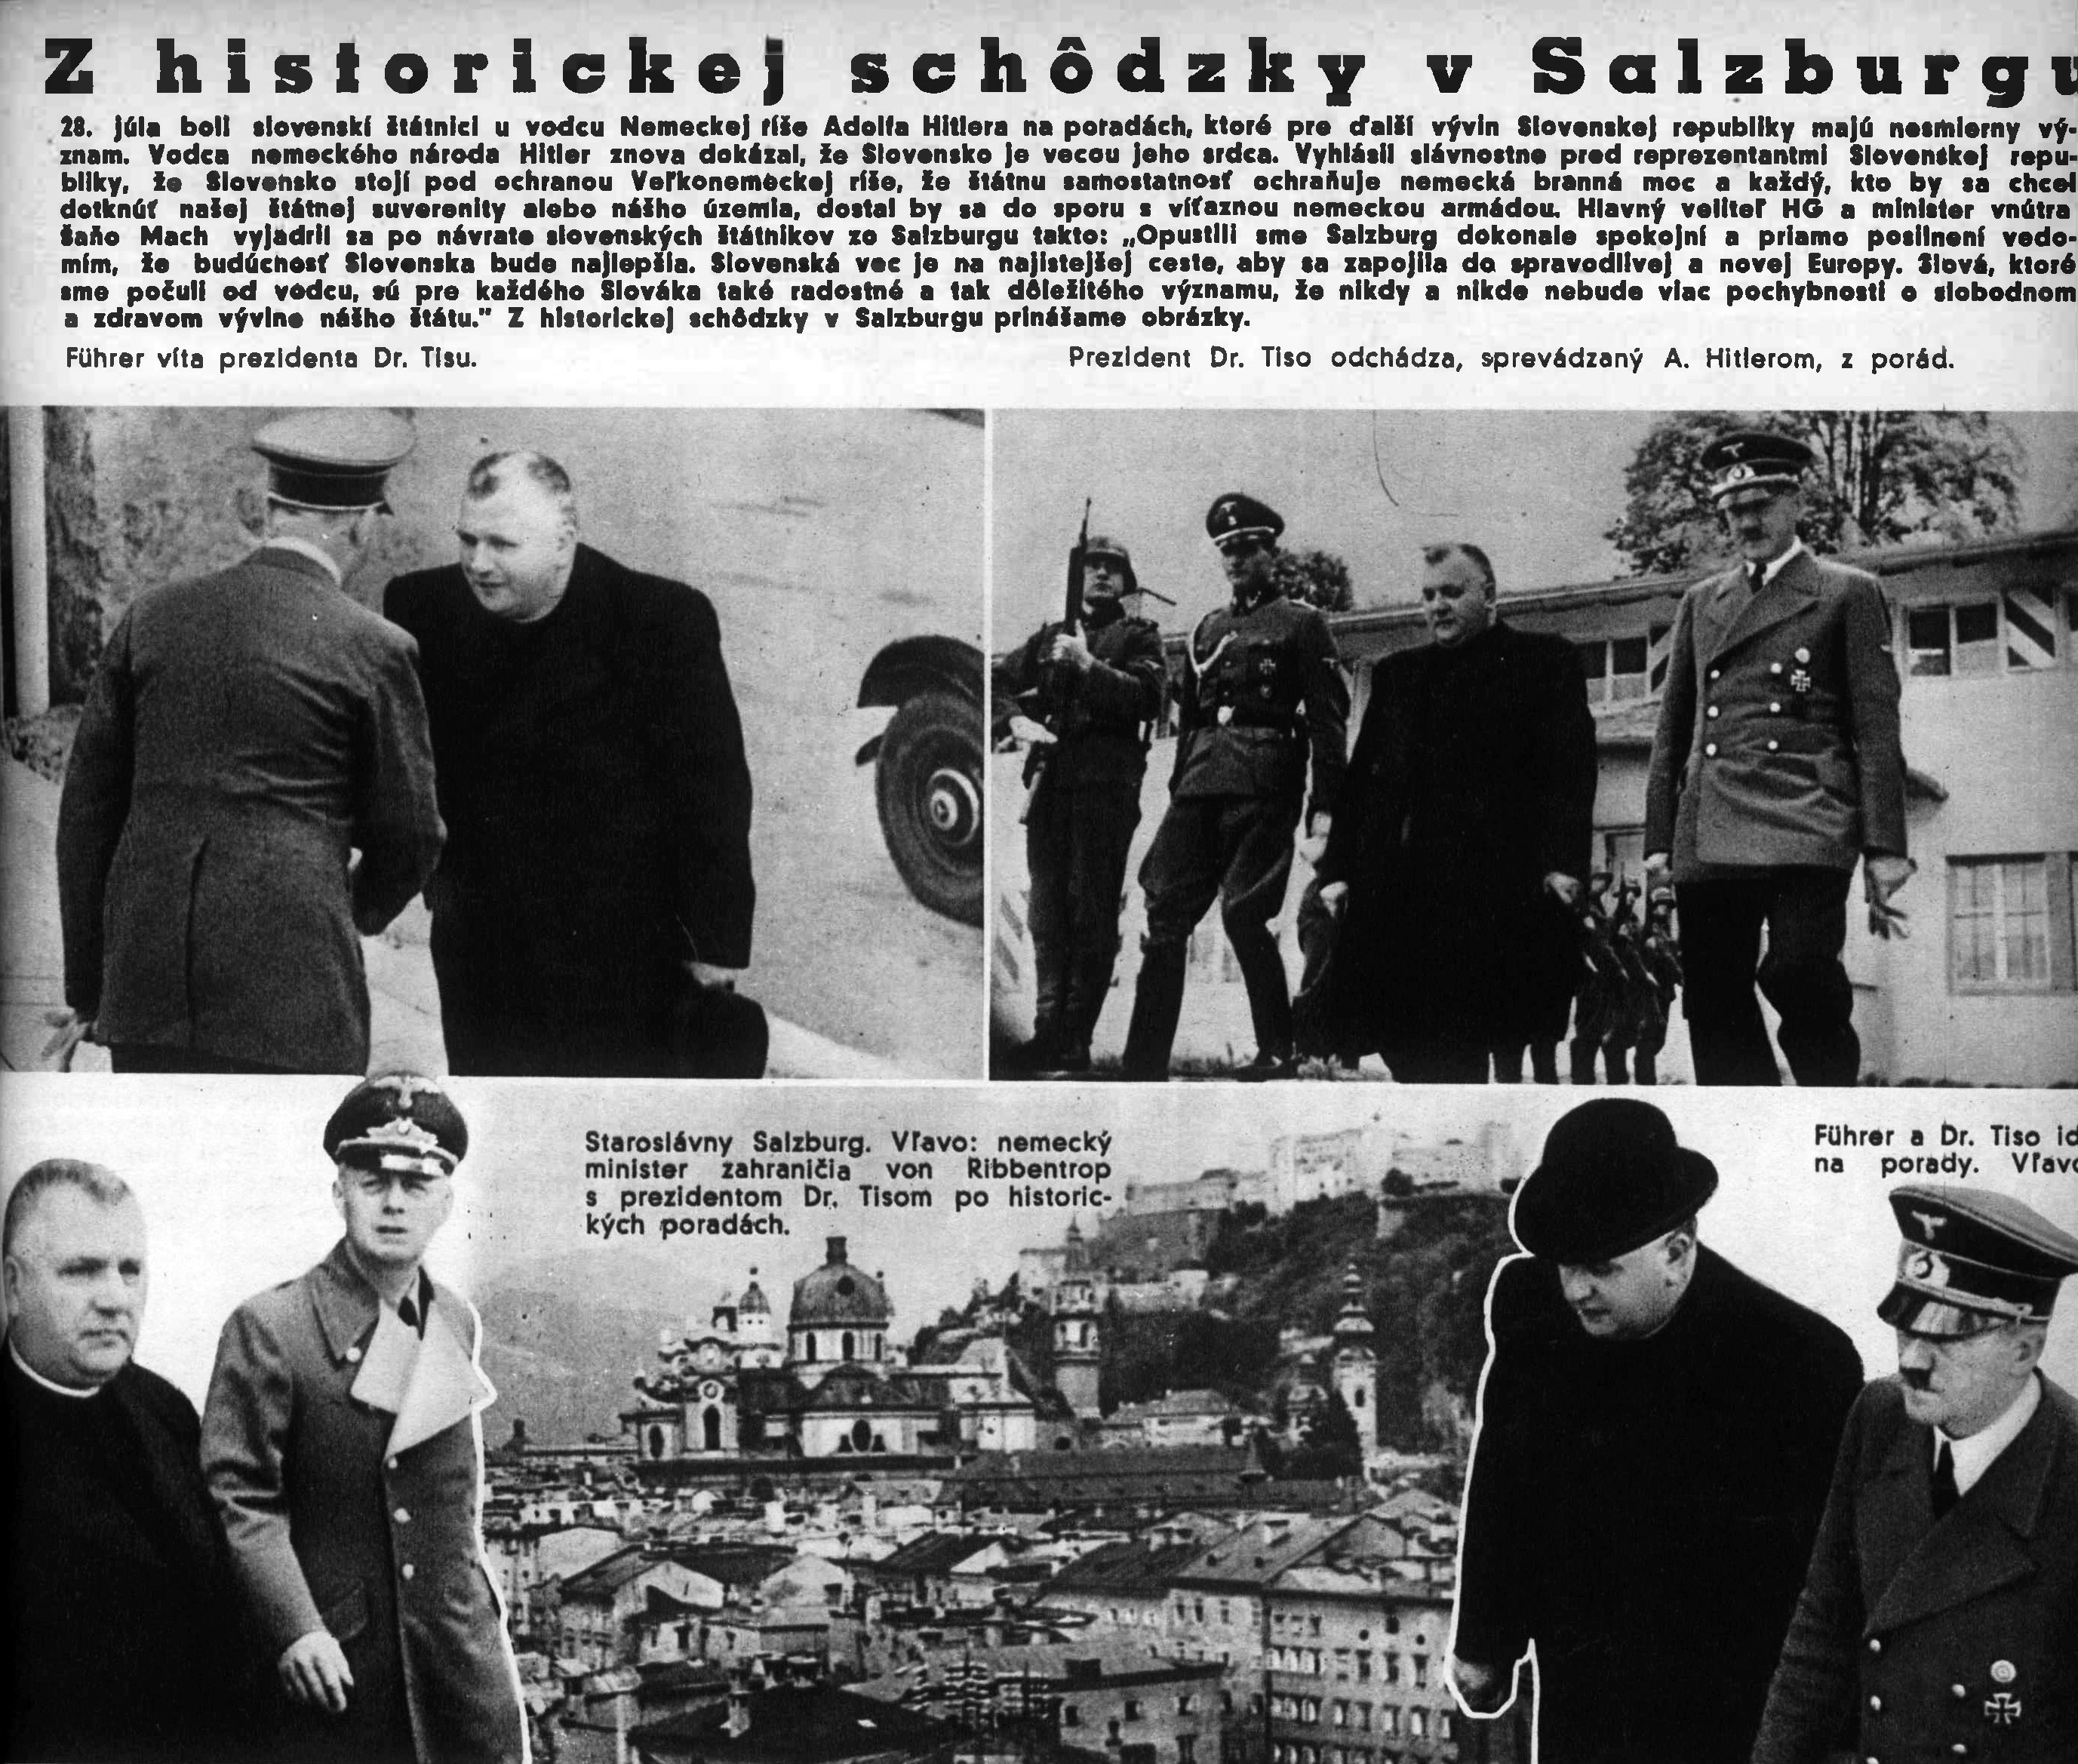 From the historical meeting at Salzburg, a collage from the New World magazine, 17.08.1940, University Library in Bratislava